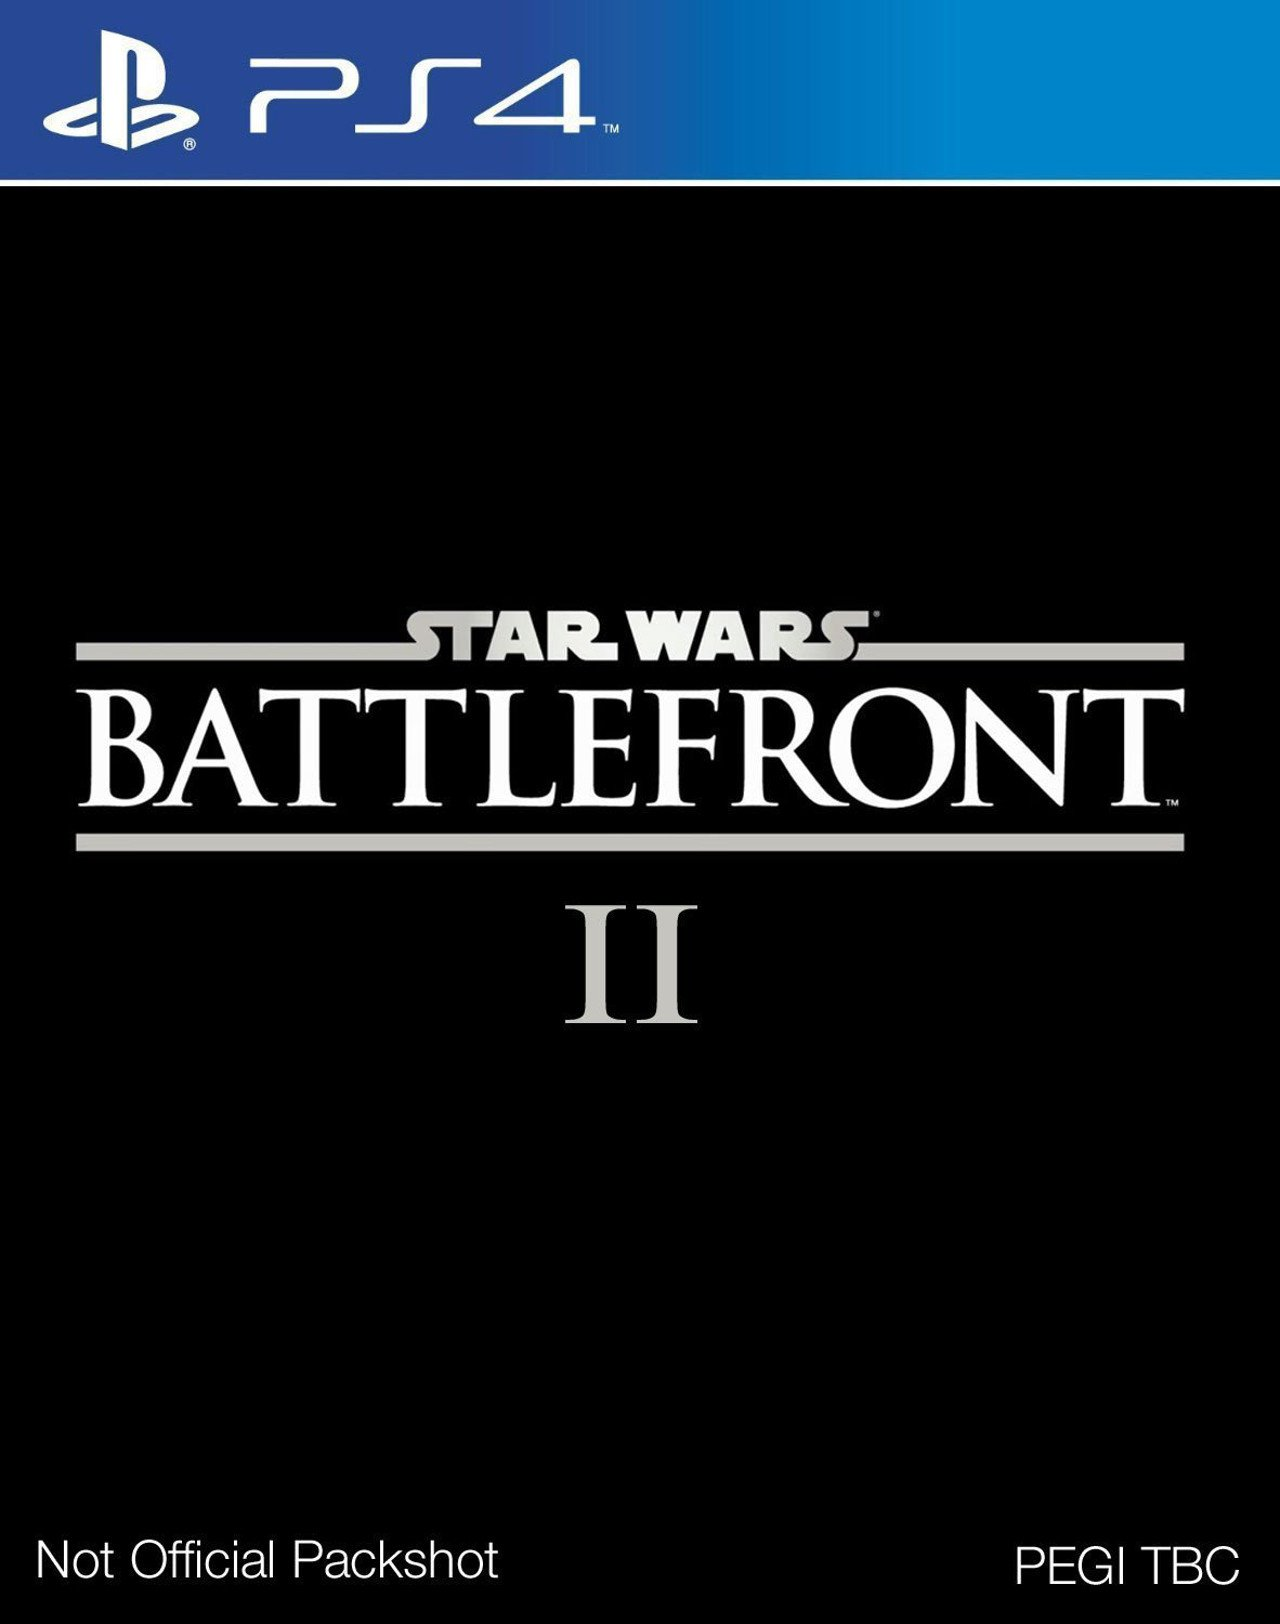 Star Wars Battlefront 2 compare su Amazon UK